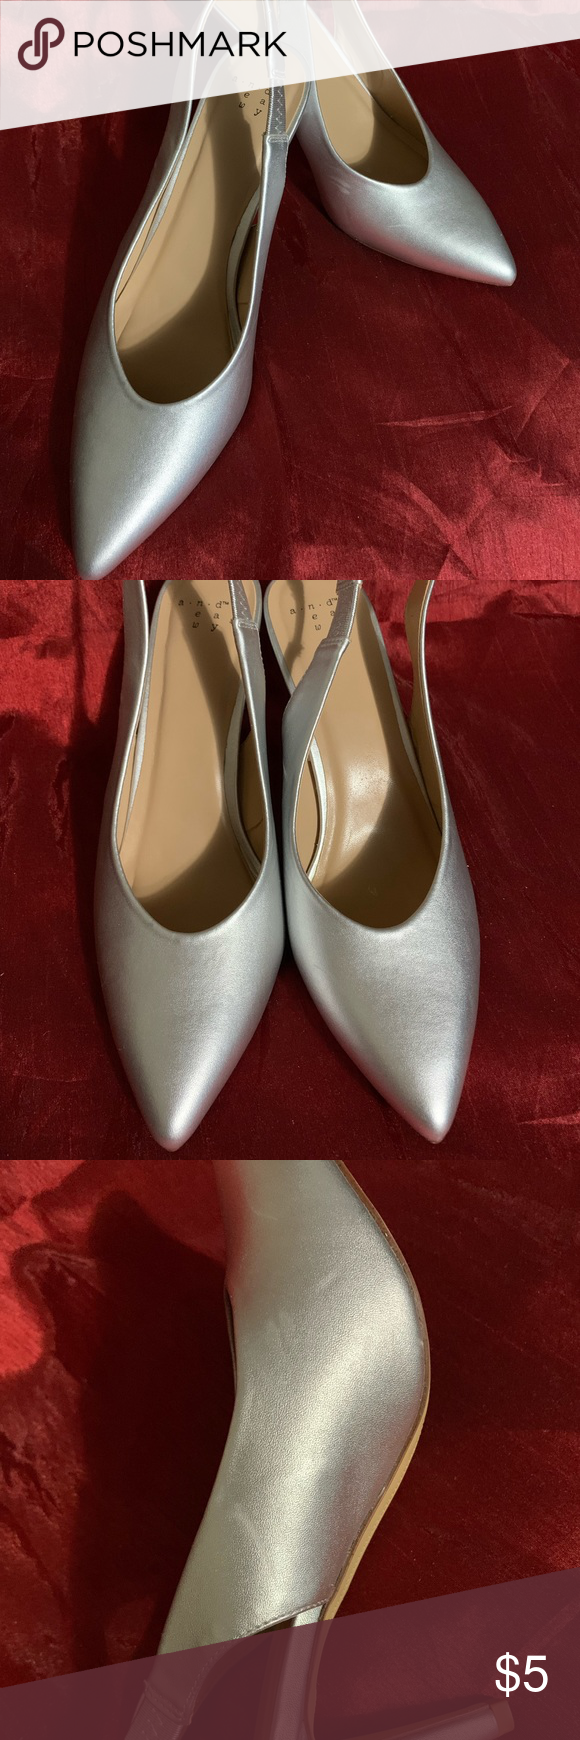 254806cb6dc A New Day™ (Target) Sling Back Heels